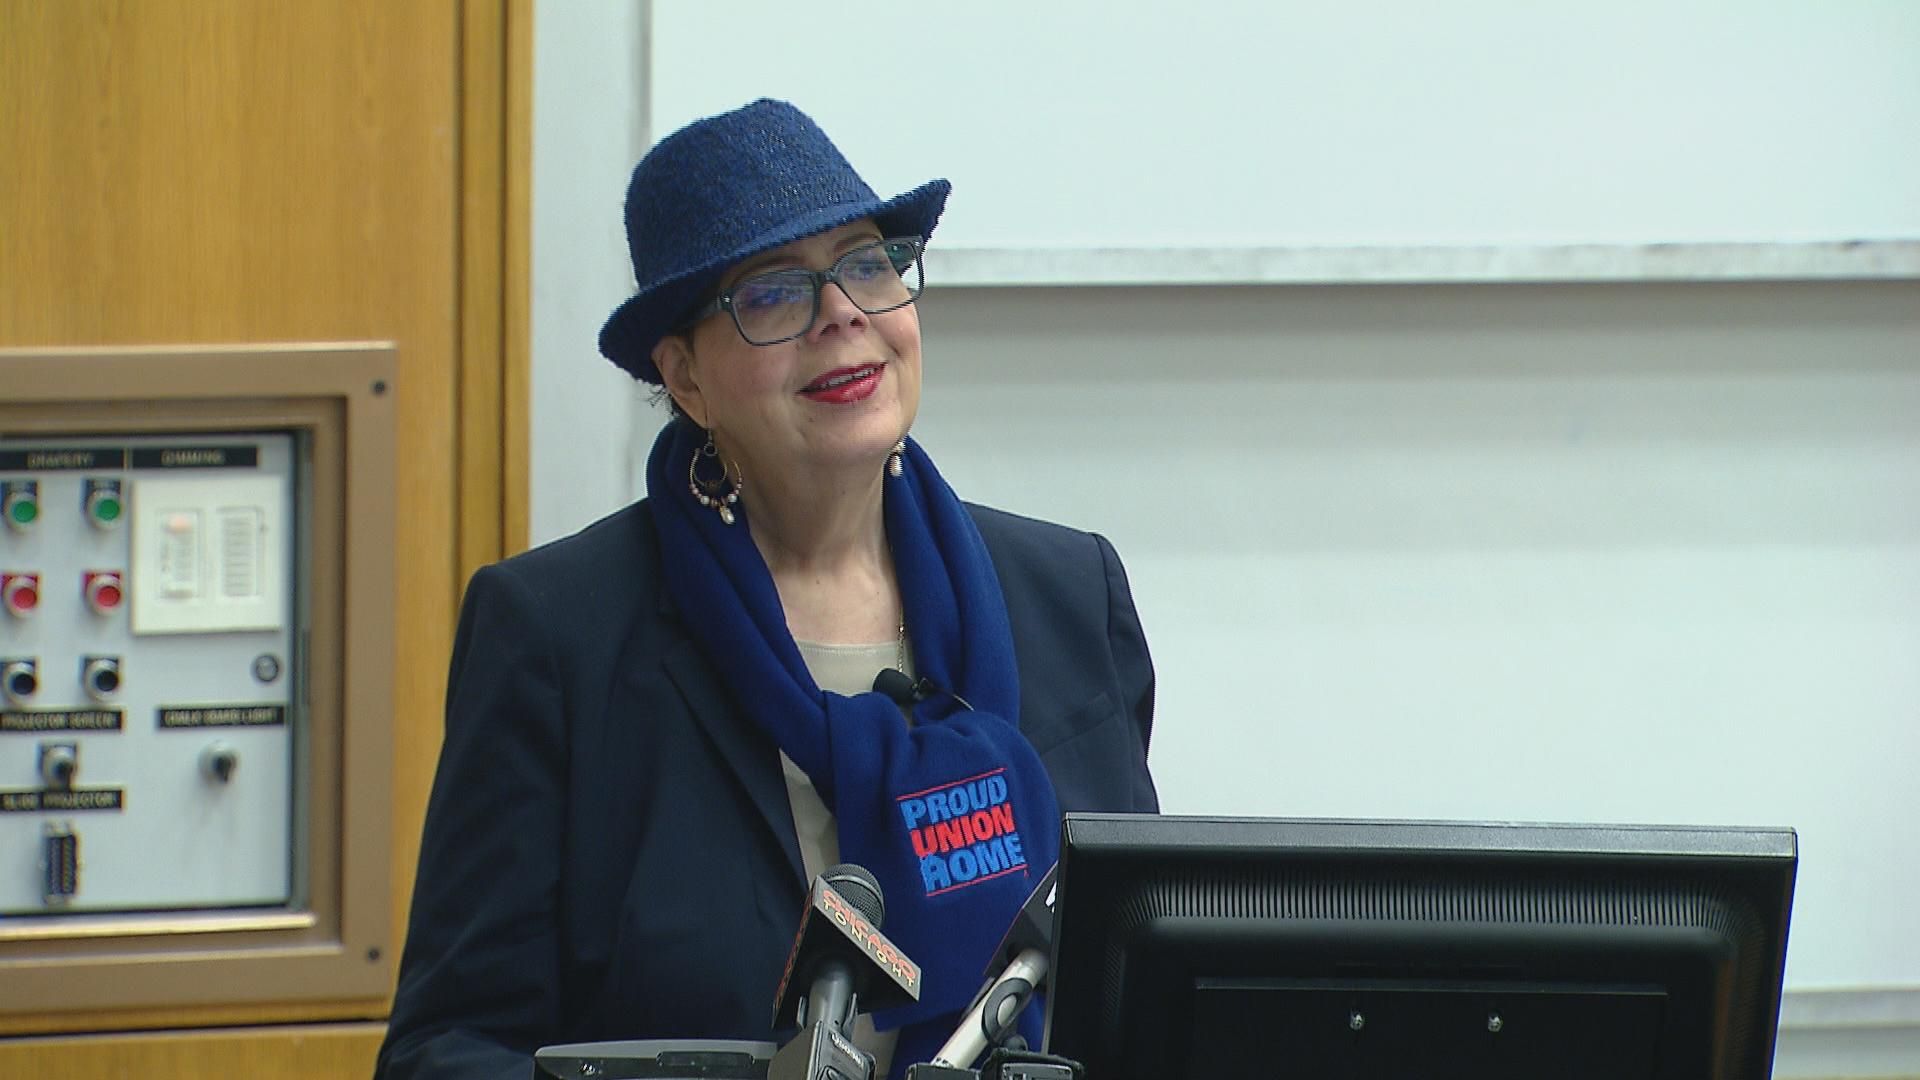 Chicago Teachers Union President Karen Lewis spent an hour Wednesday afternoon lecturing students and taking questions on education policy at the University of Illinois-Chicago. (Chicago Tonight)